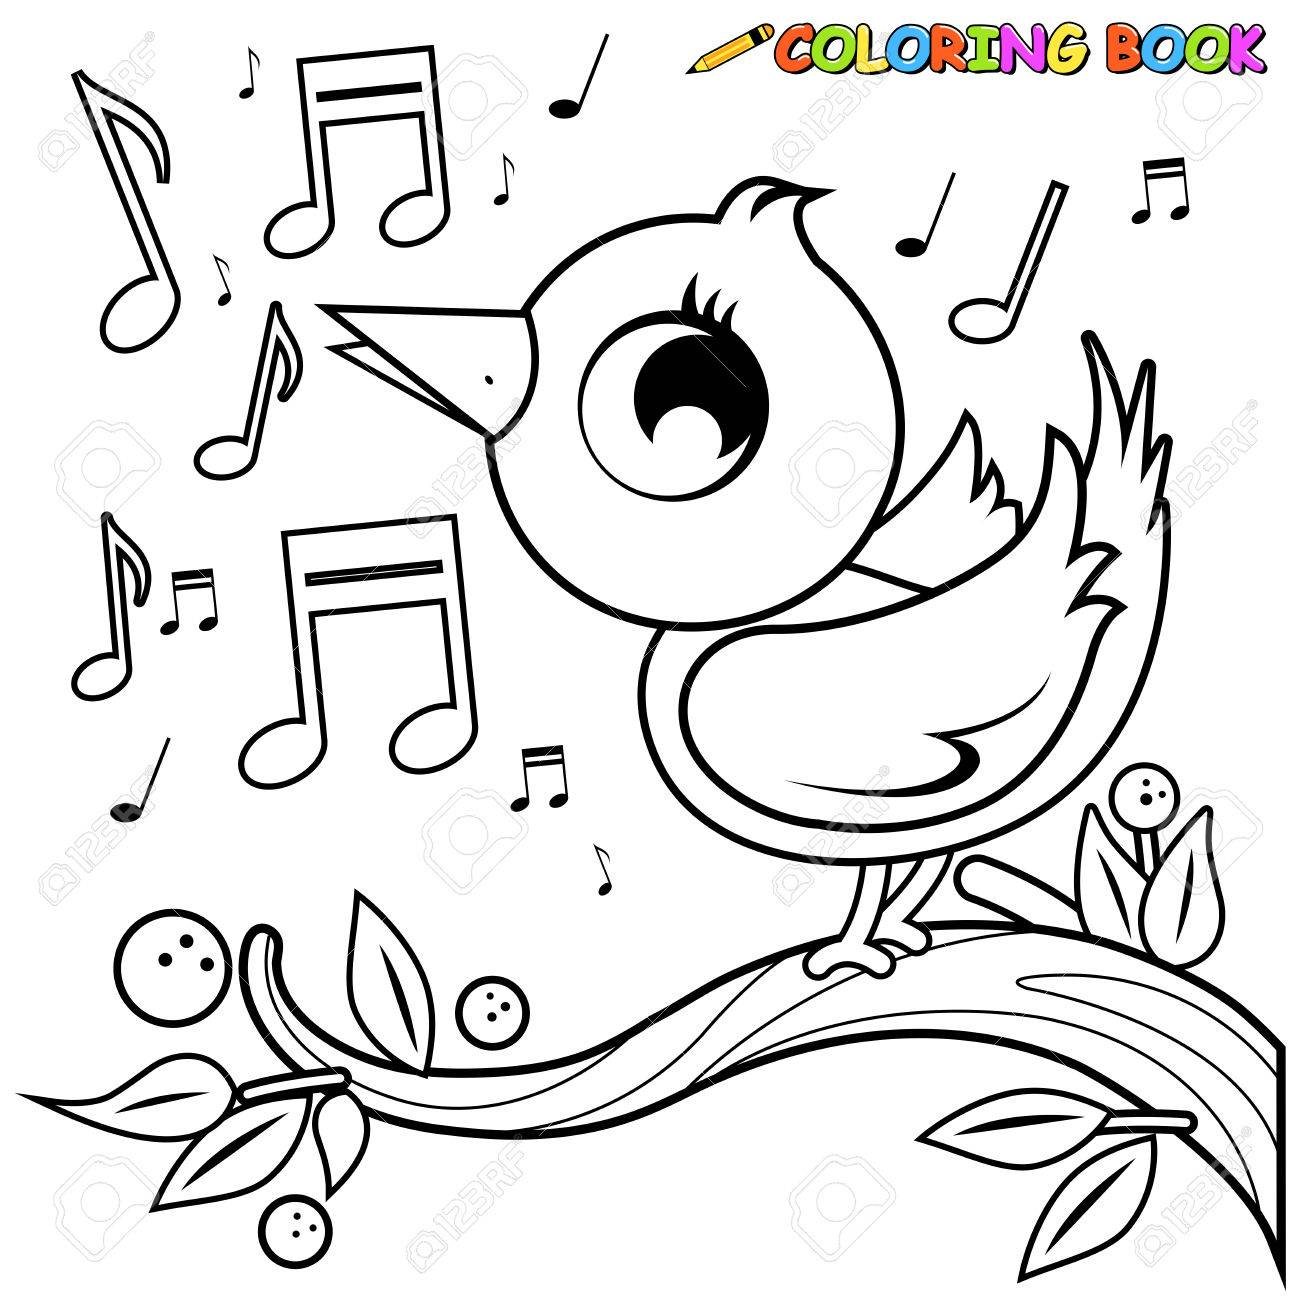 Cute Bird On Branch Singing Coloring Book Page Royalty Free Cliparts Vectors And Stock Illustration Image 66062102